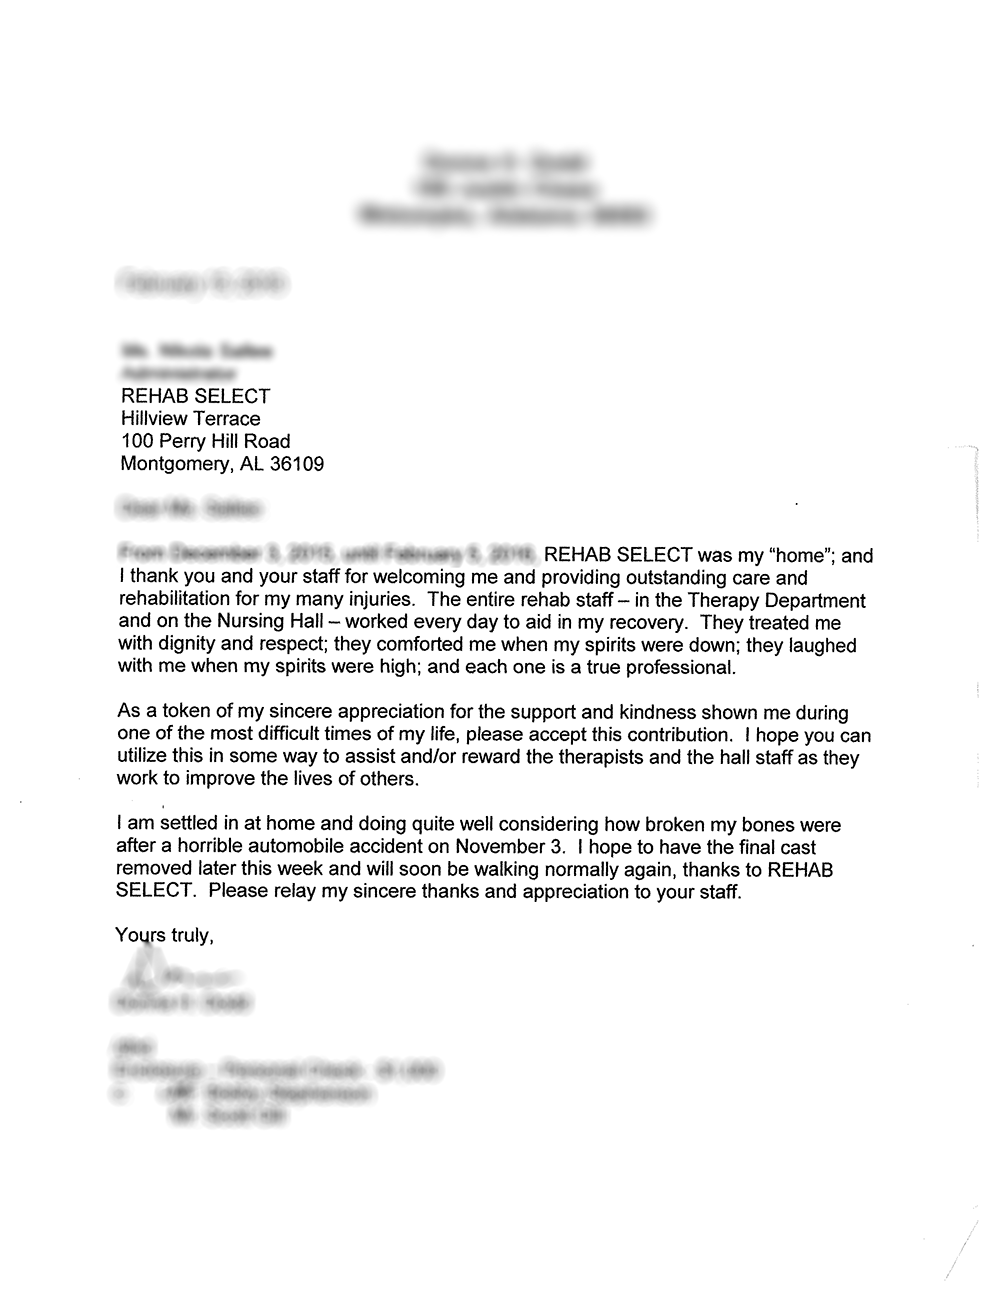 RS-Hillview-Letter.png